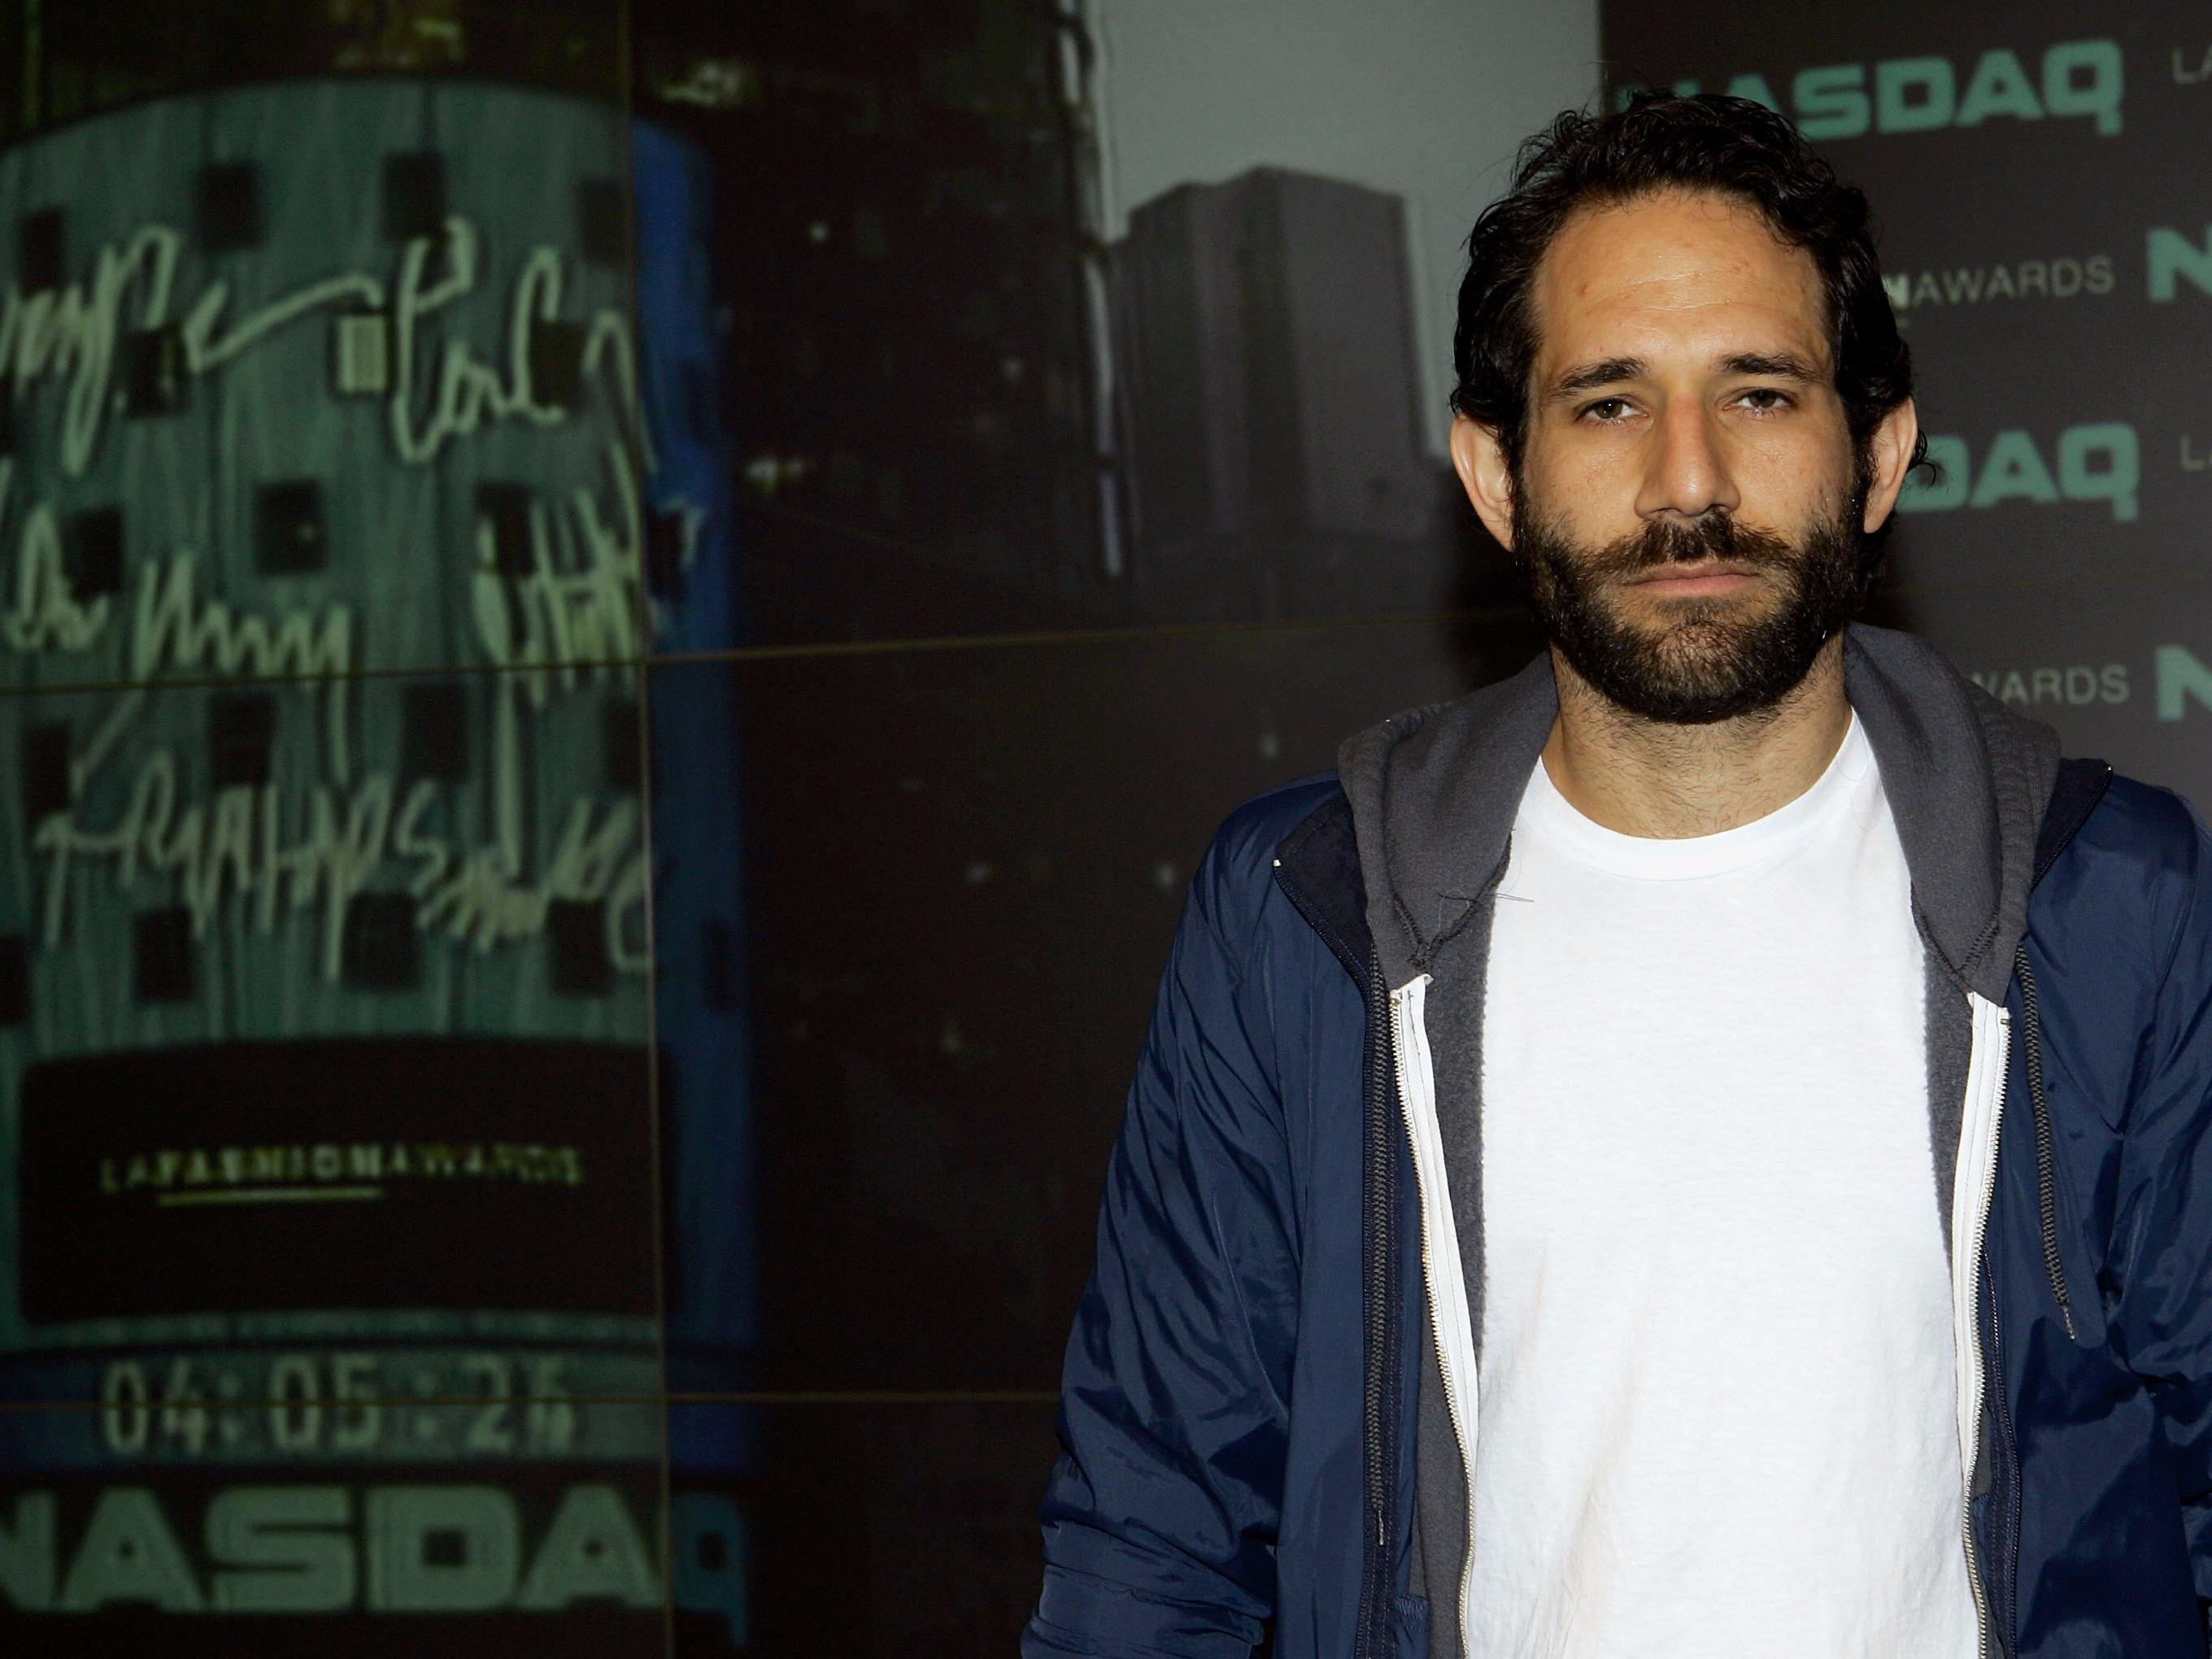 Fashion style Dov reportedly charney broke for lady